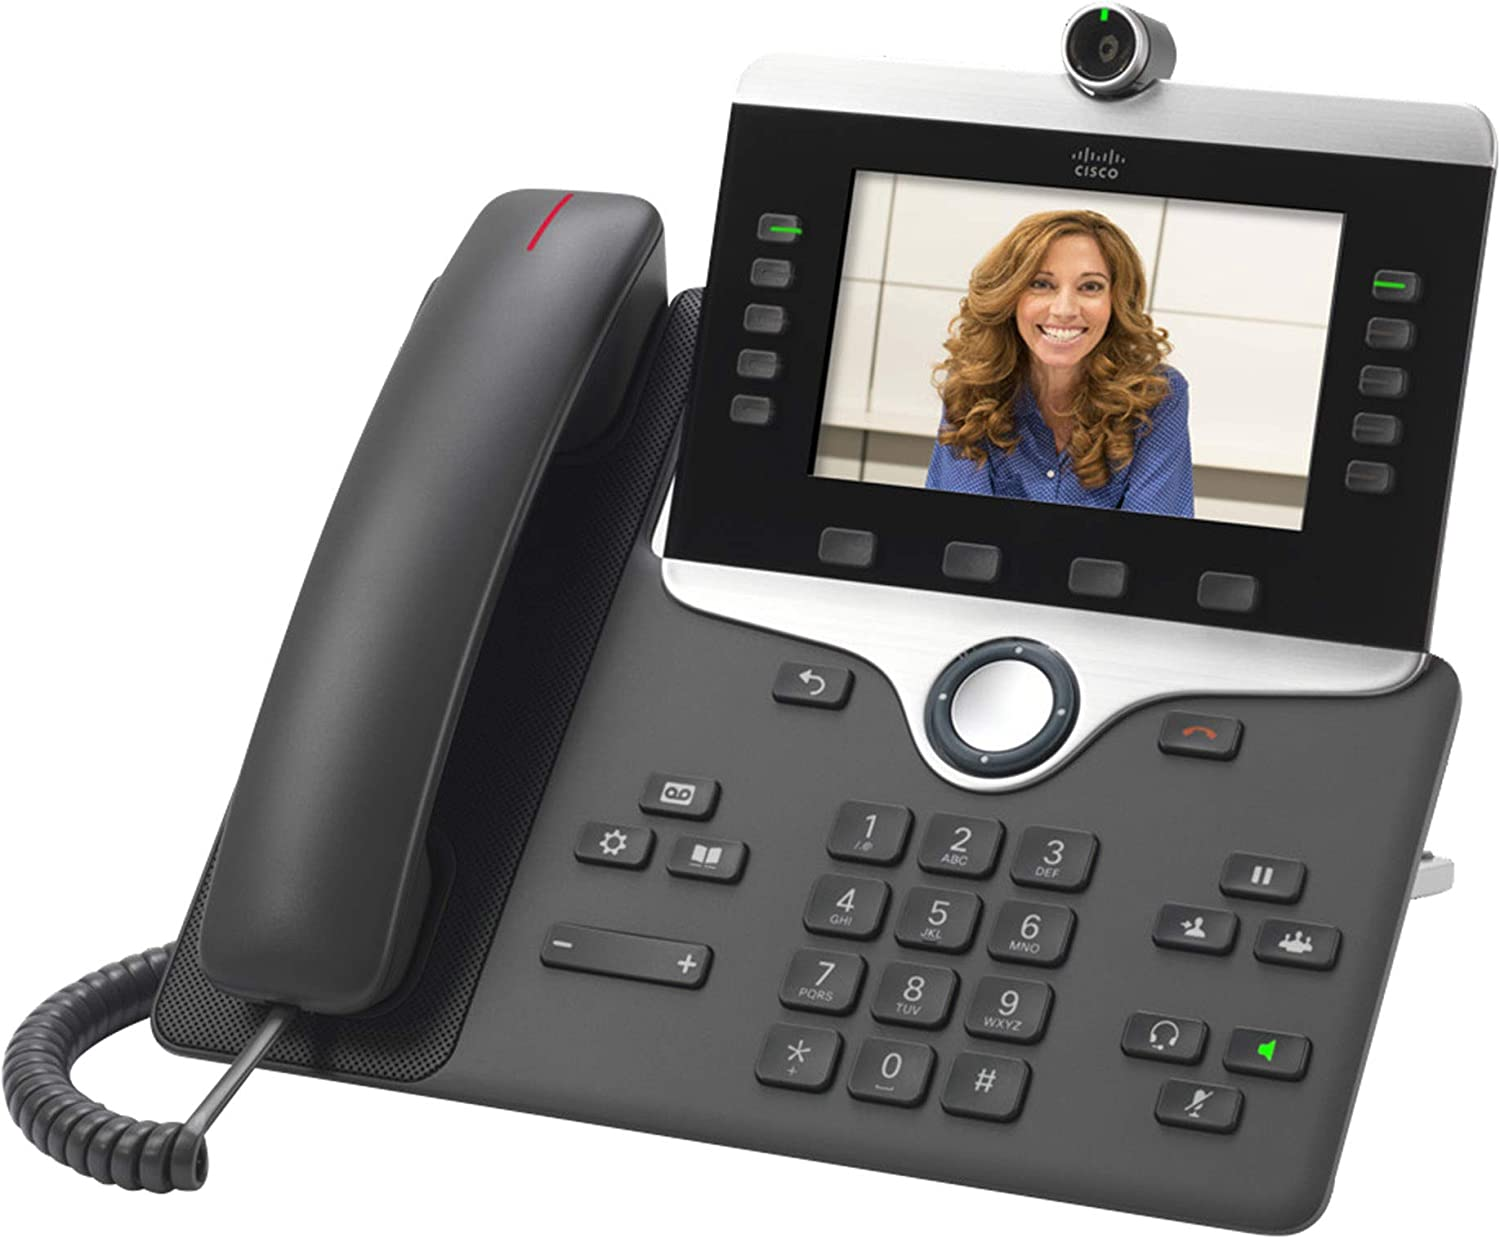 Cisco Remanufactured IP Business Phone 8845, 5-inch WVGA Color Display, 720p HD Two-Way Video, Gigabit Ethernet Switch, Class 2 PoE, 1-Year Limited Hardware Warranty (CP-8845-K9-RF)